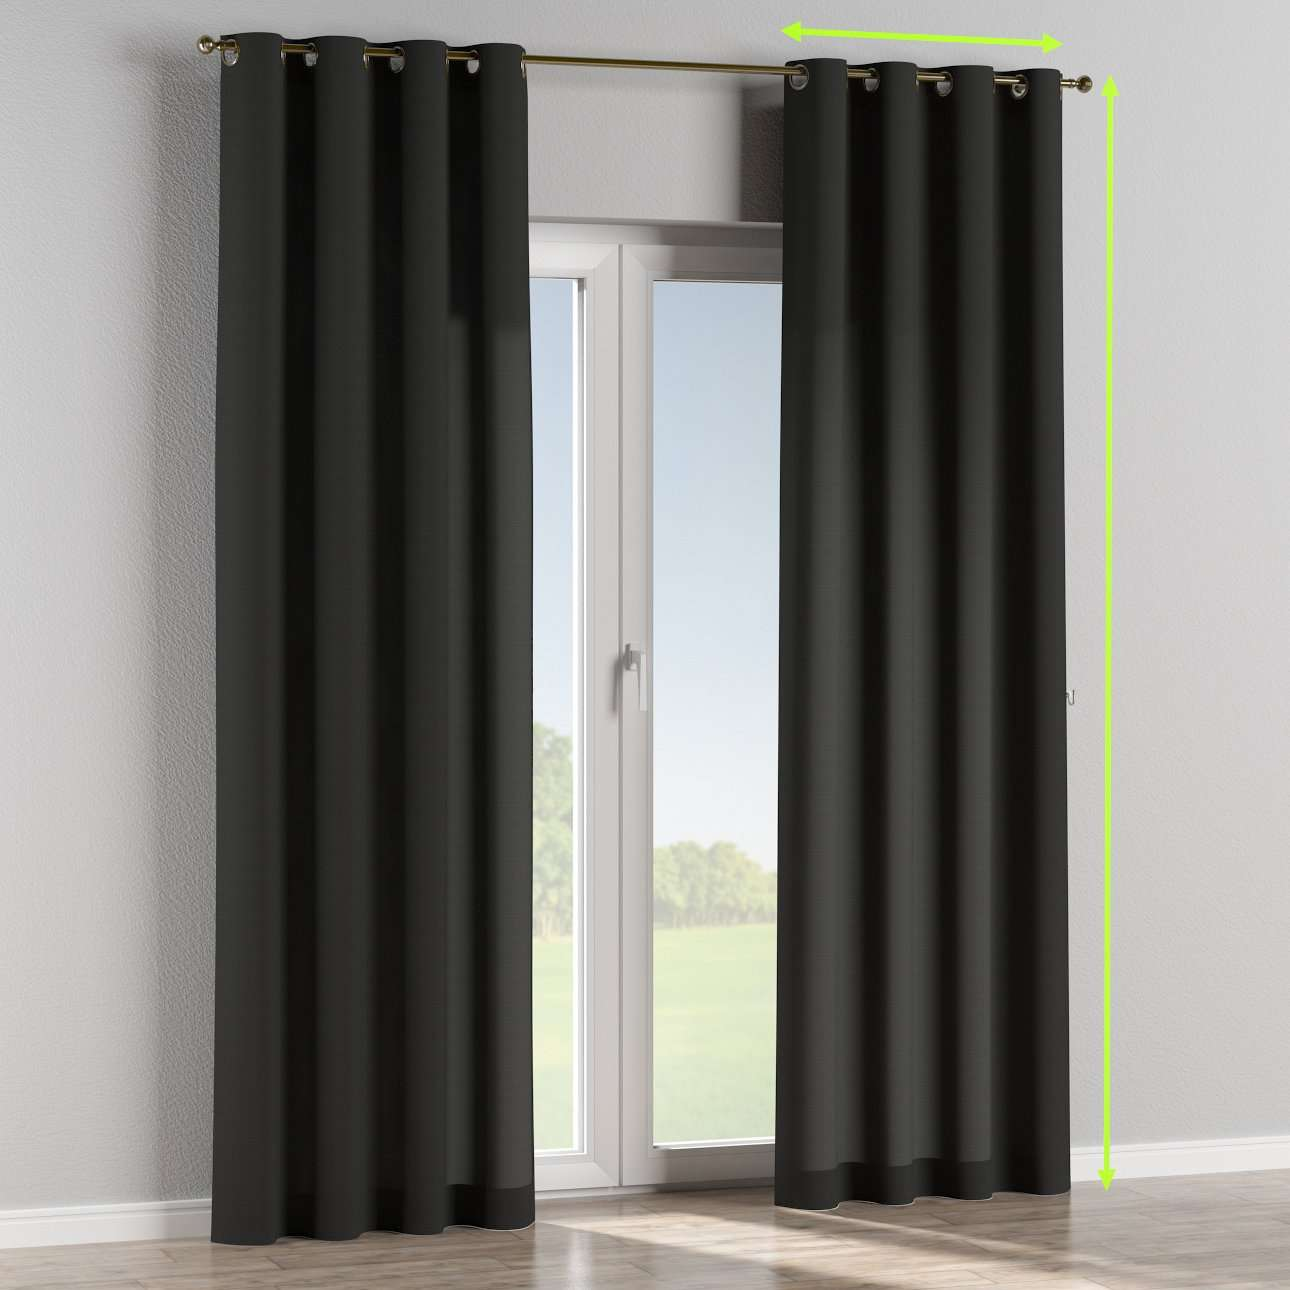 Eyelet lined curtains in collection Jupiter, fabric: 127-99